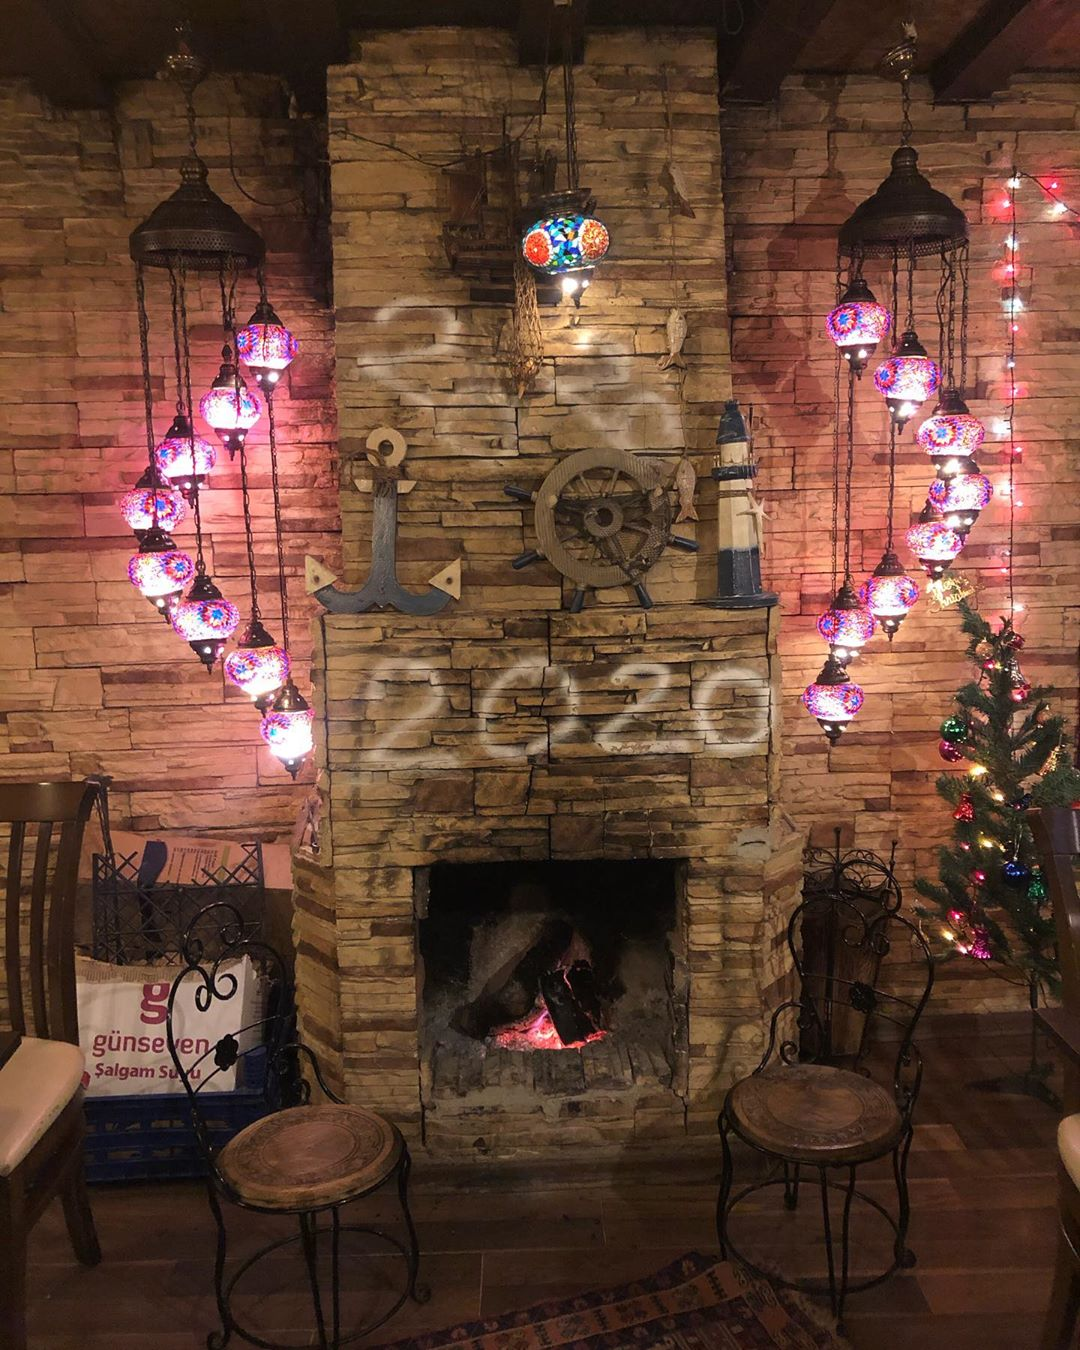 Fireplace Decorations for Christmas Home Decor 000 (8)